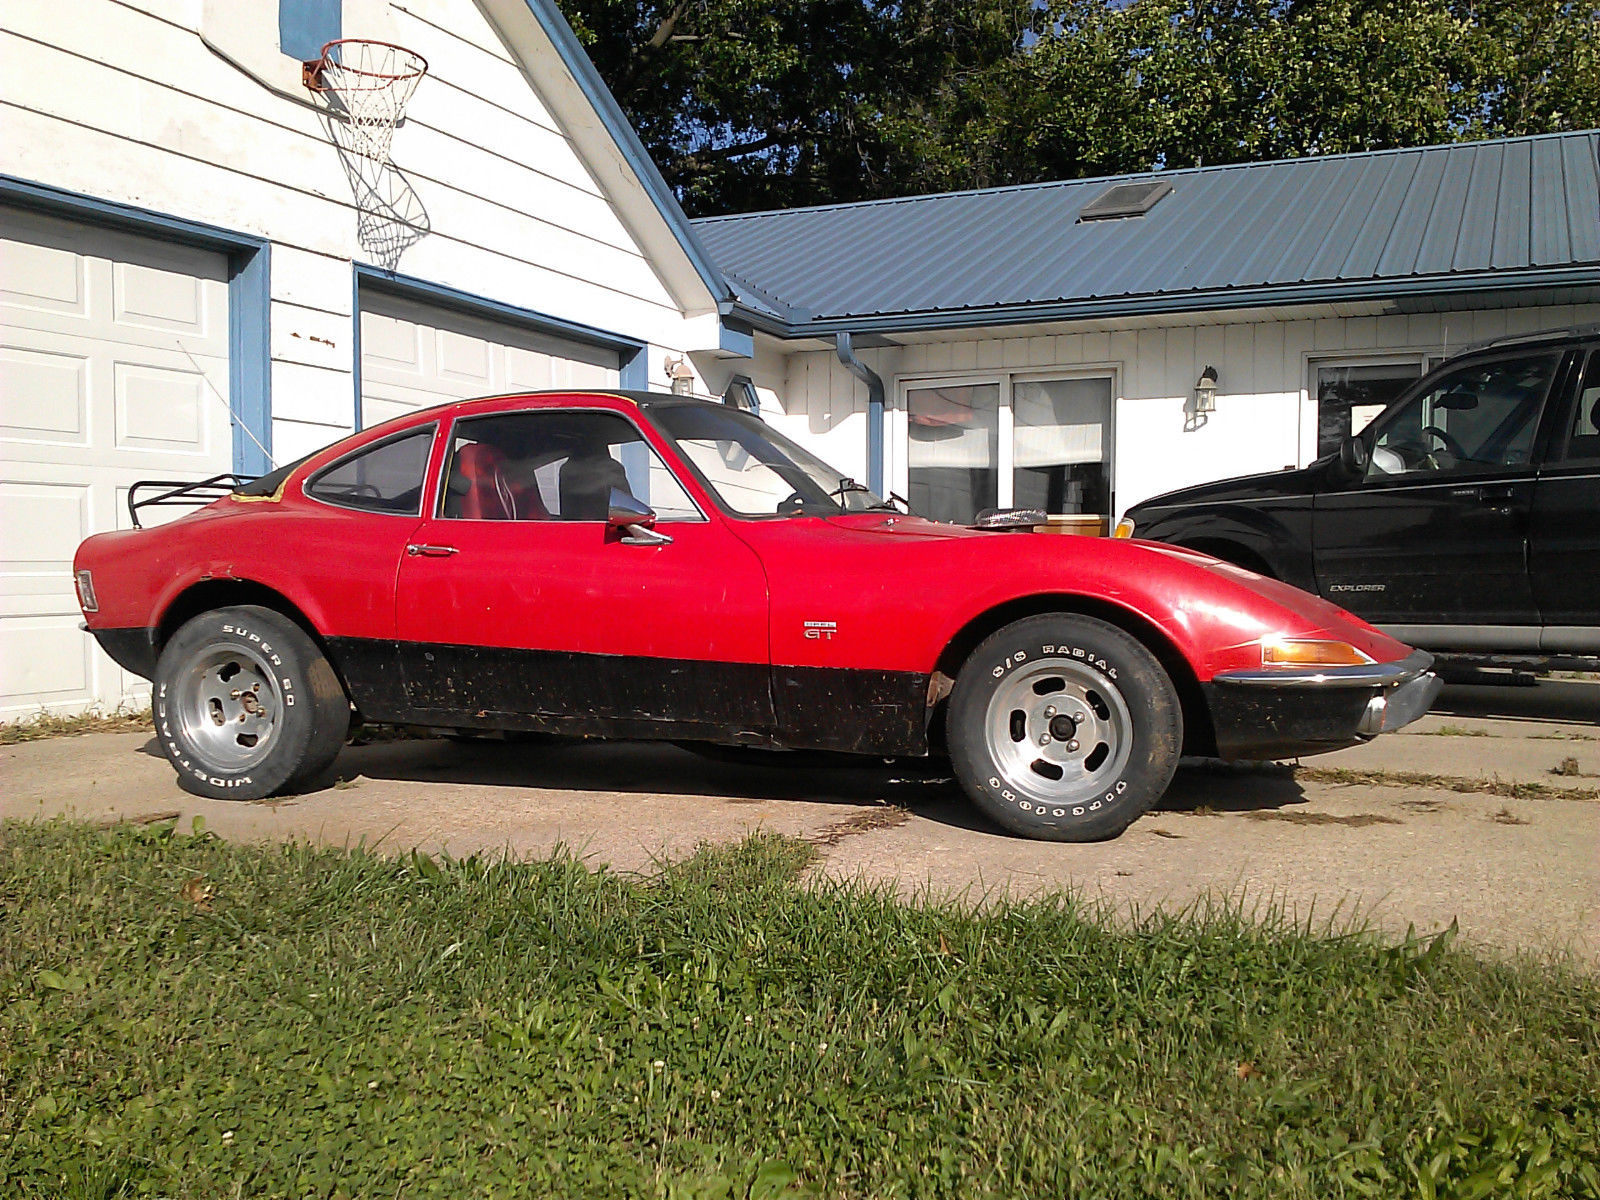 1970 Opel Gt Coupe Chevy 350 Motor Classic Opel Gt